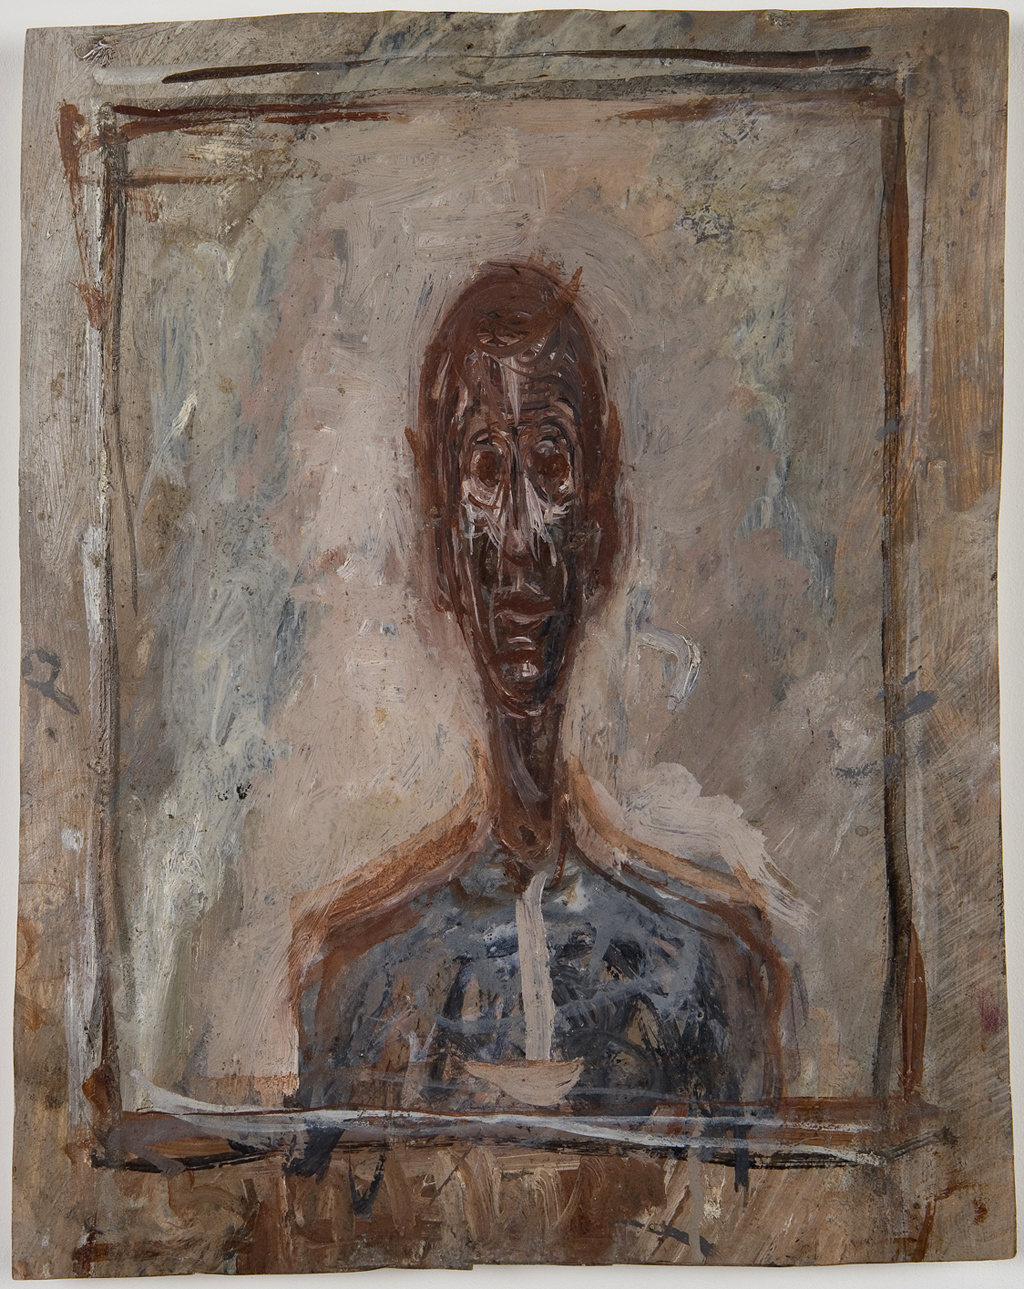 Alberto Giacometti. Bust of a man in the frame